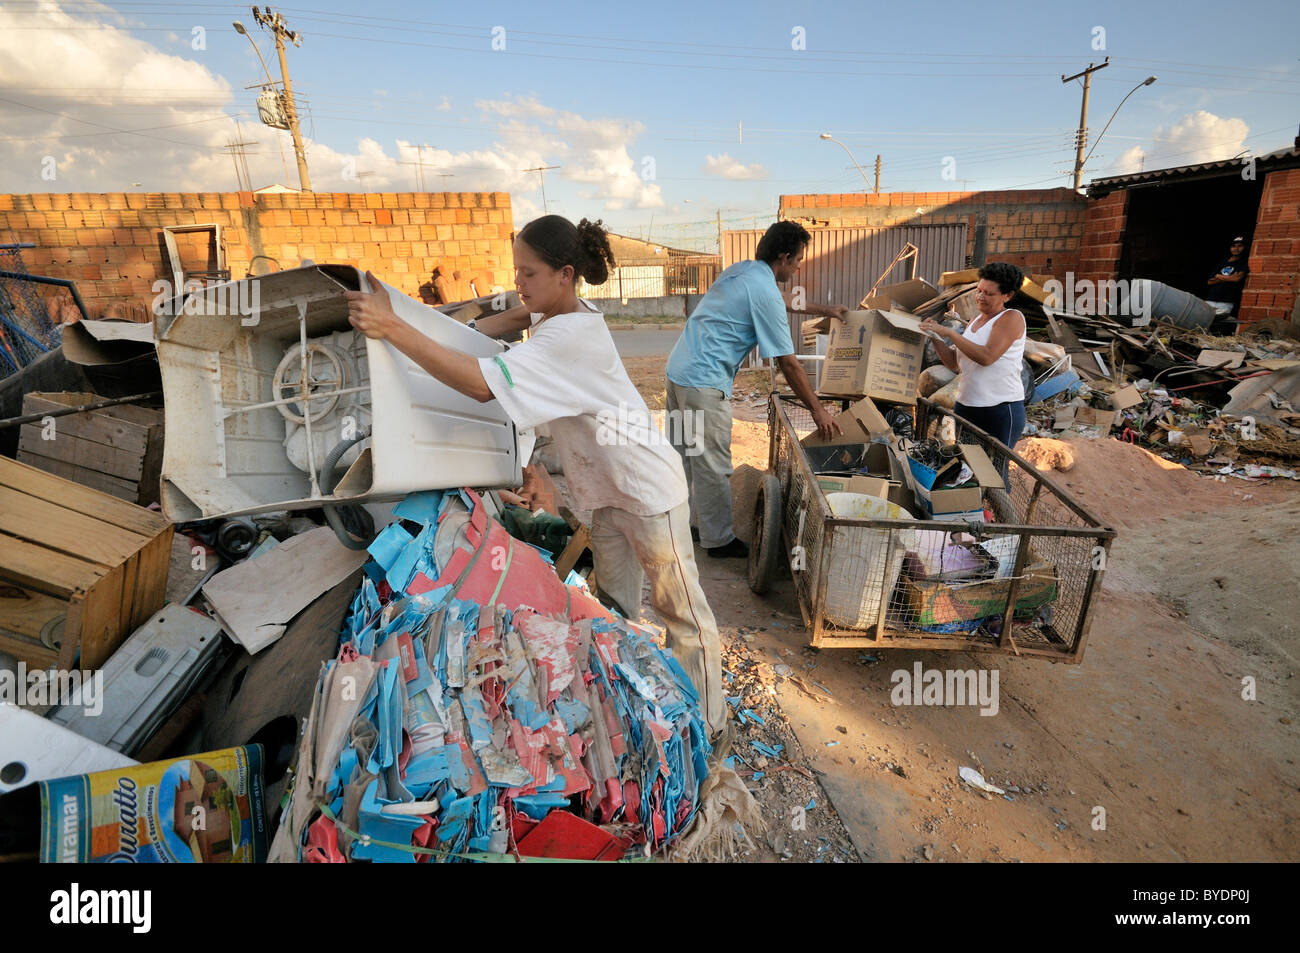 Garbage collectors provide recyclables at the social project for ex-prisoners 'Reintegar Reciclando' - Stock Image